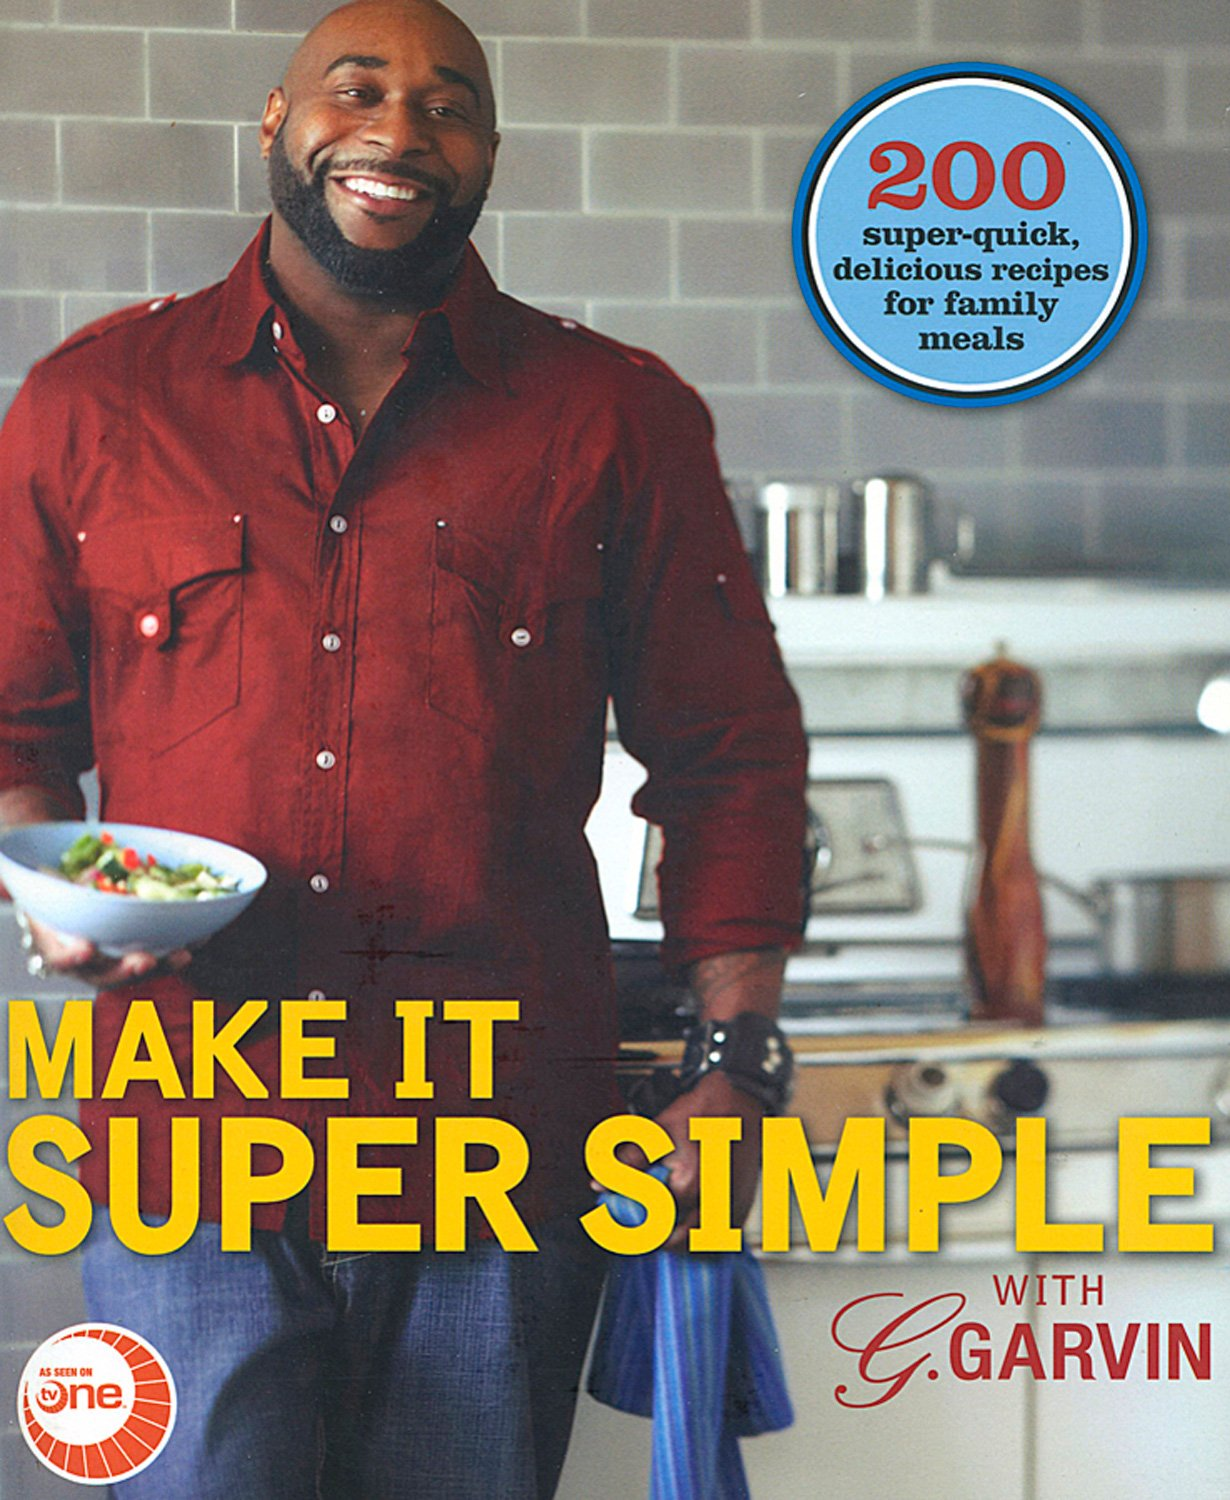 Download Make It Super Simple with G. Garvin pdf